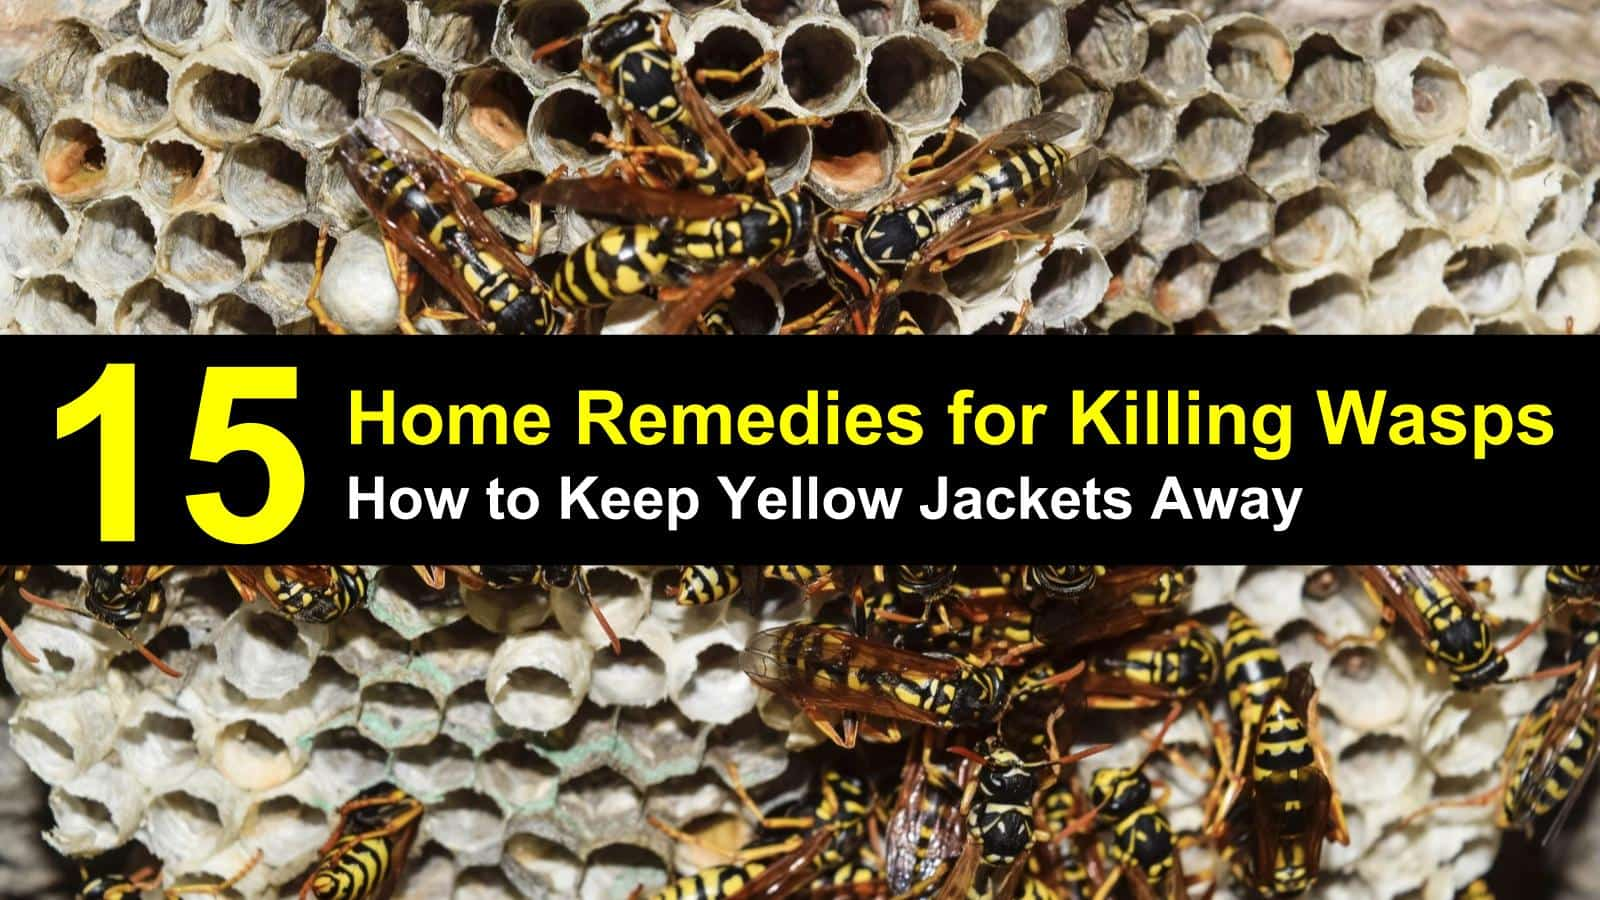 Small yellow jackets in the ground - How To Keep Yellow Jackets Away Titleimg